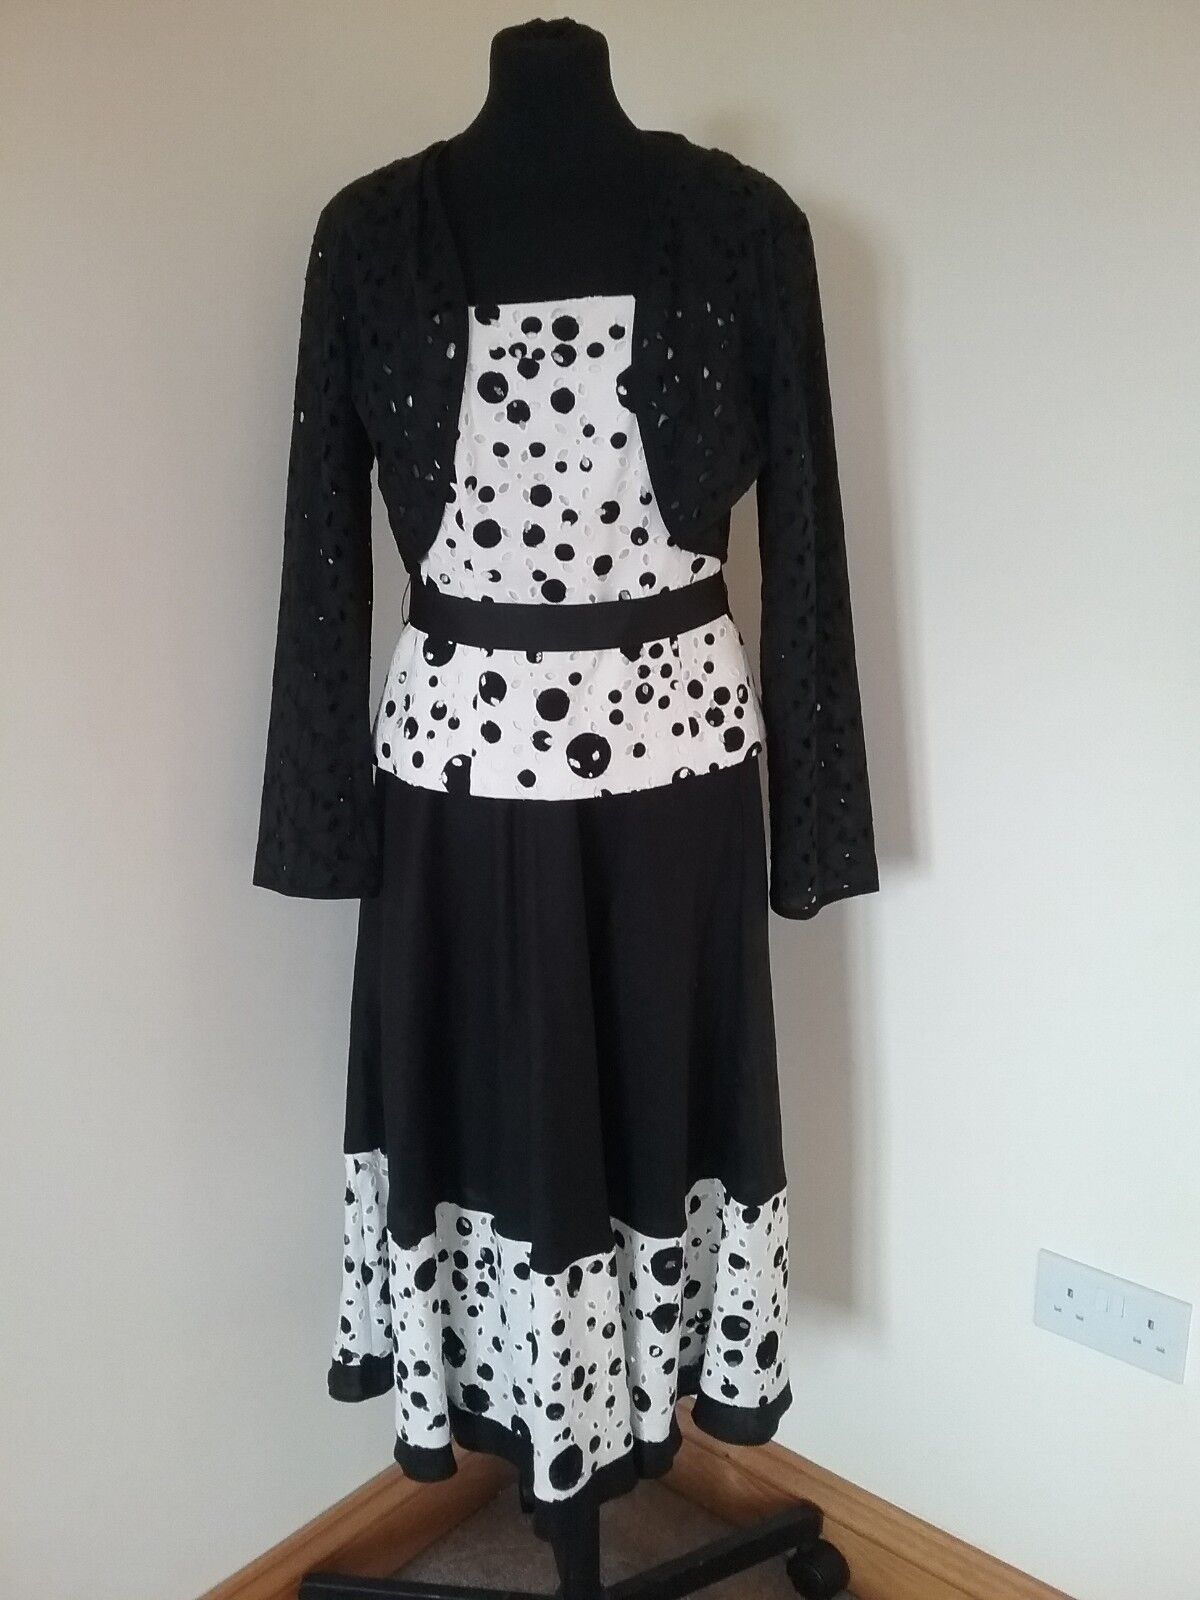 Bnwt Ladies Peter Martin Designer Mother Of Bride/Wedding/races outfit 10